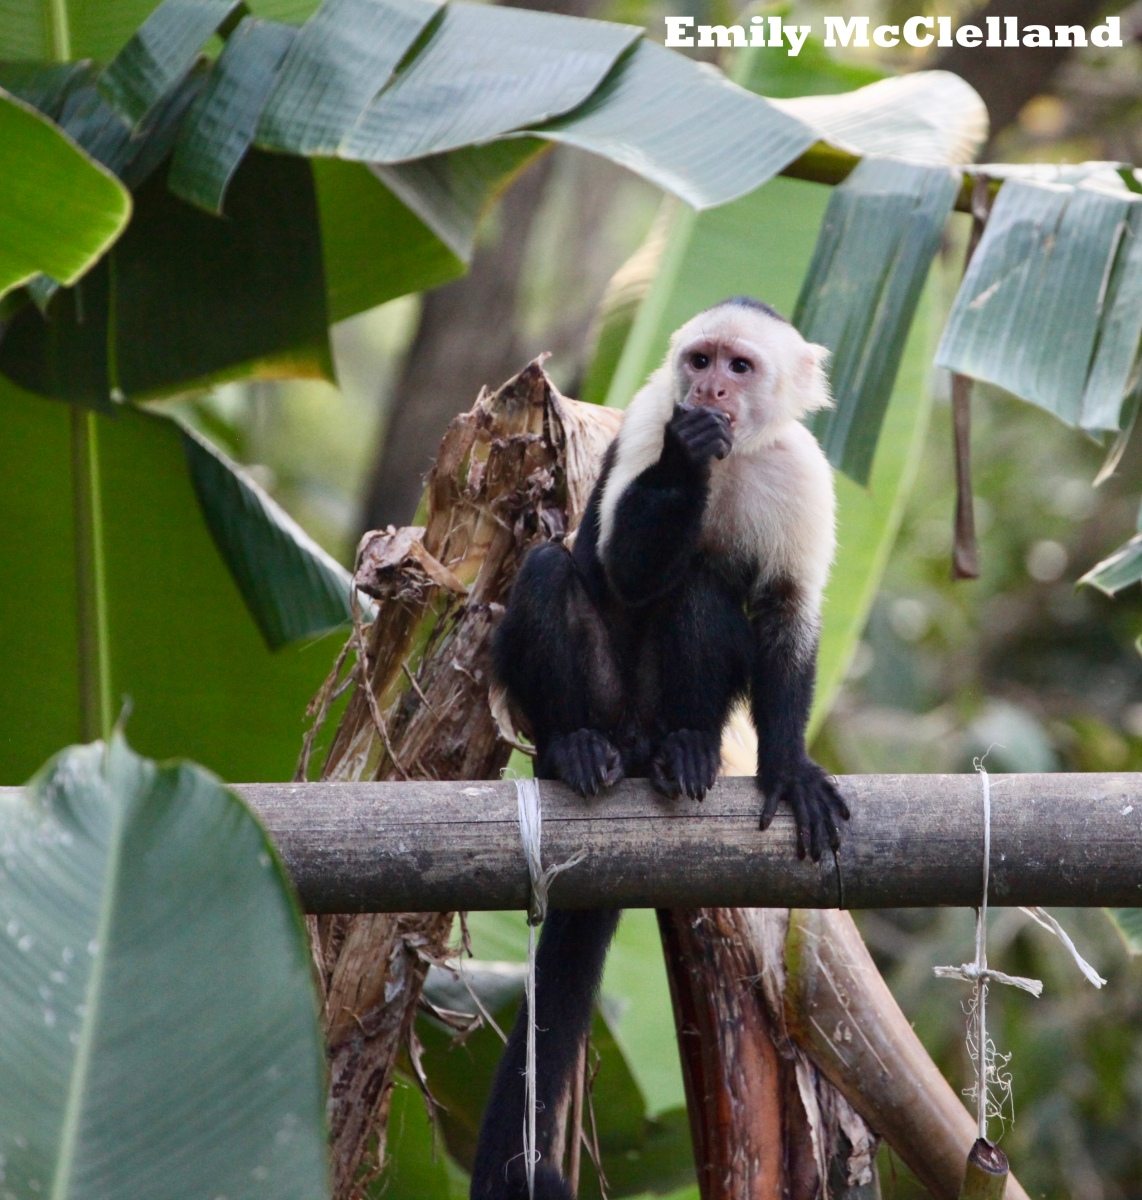 The White-Faced Capuchin